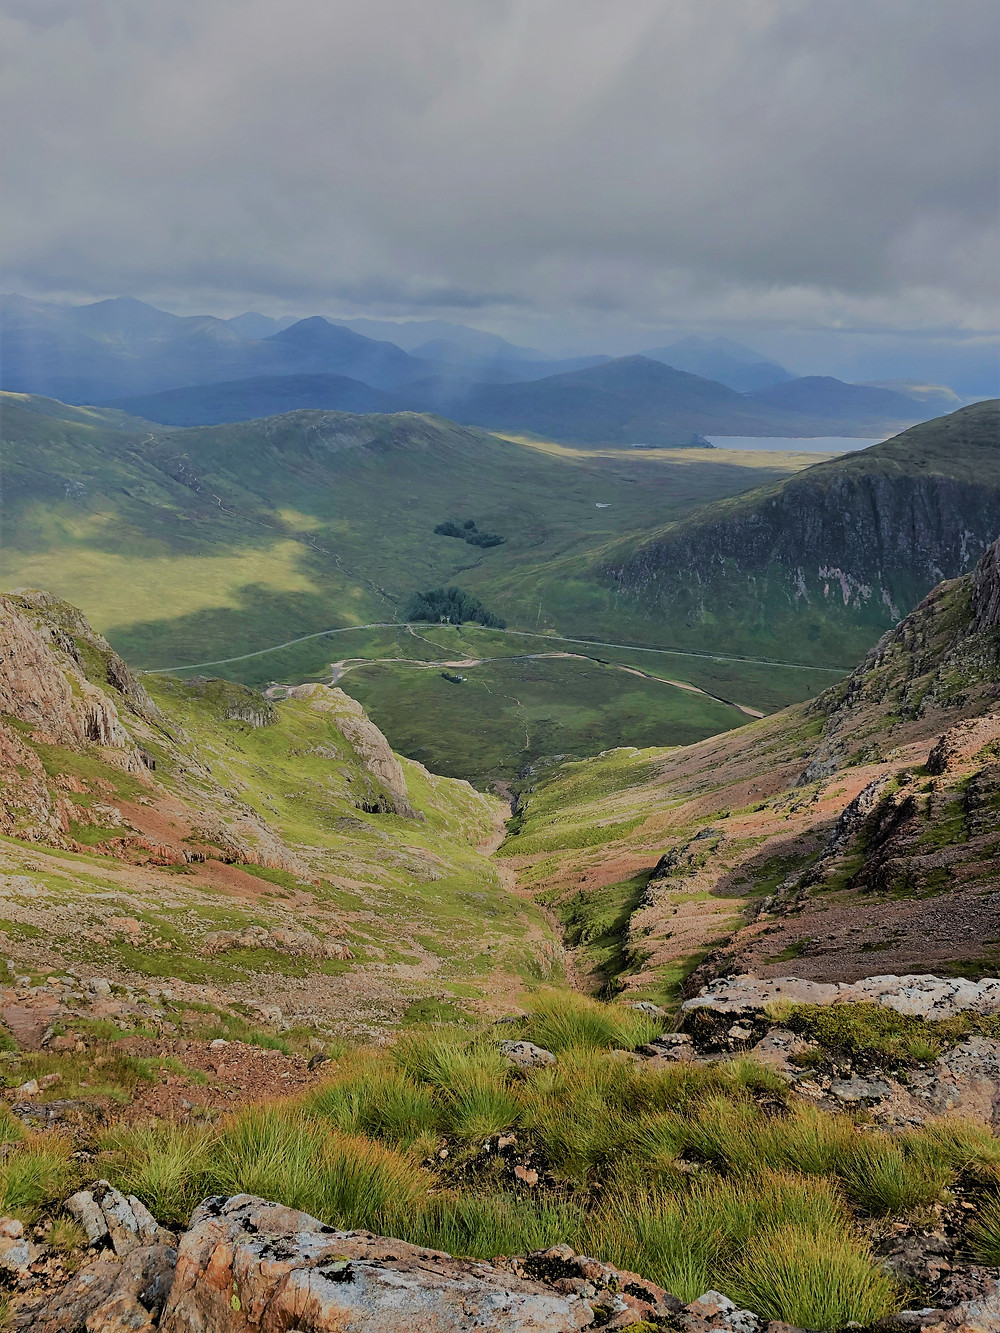 View looking down Coire na Tuliach on the hike of Buachaille Etive Mòr in the Scottish Highlands